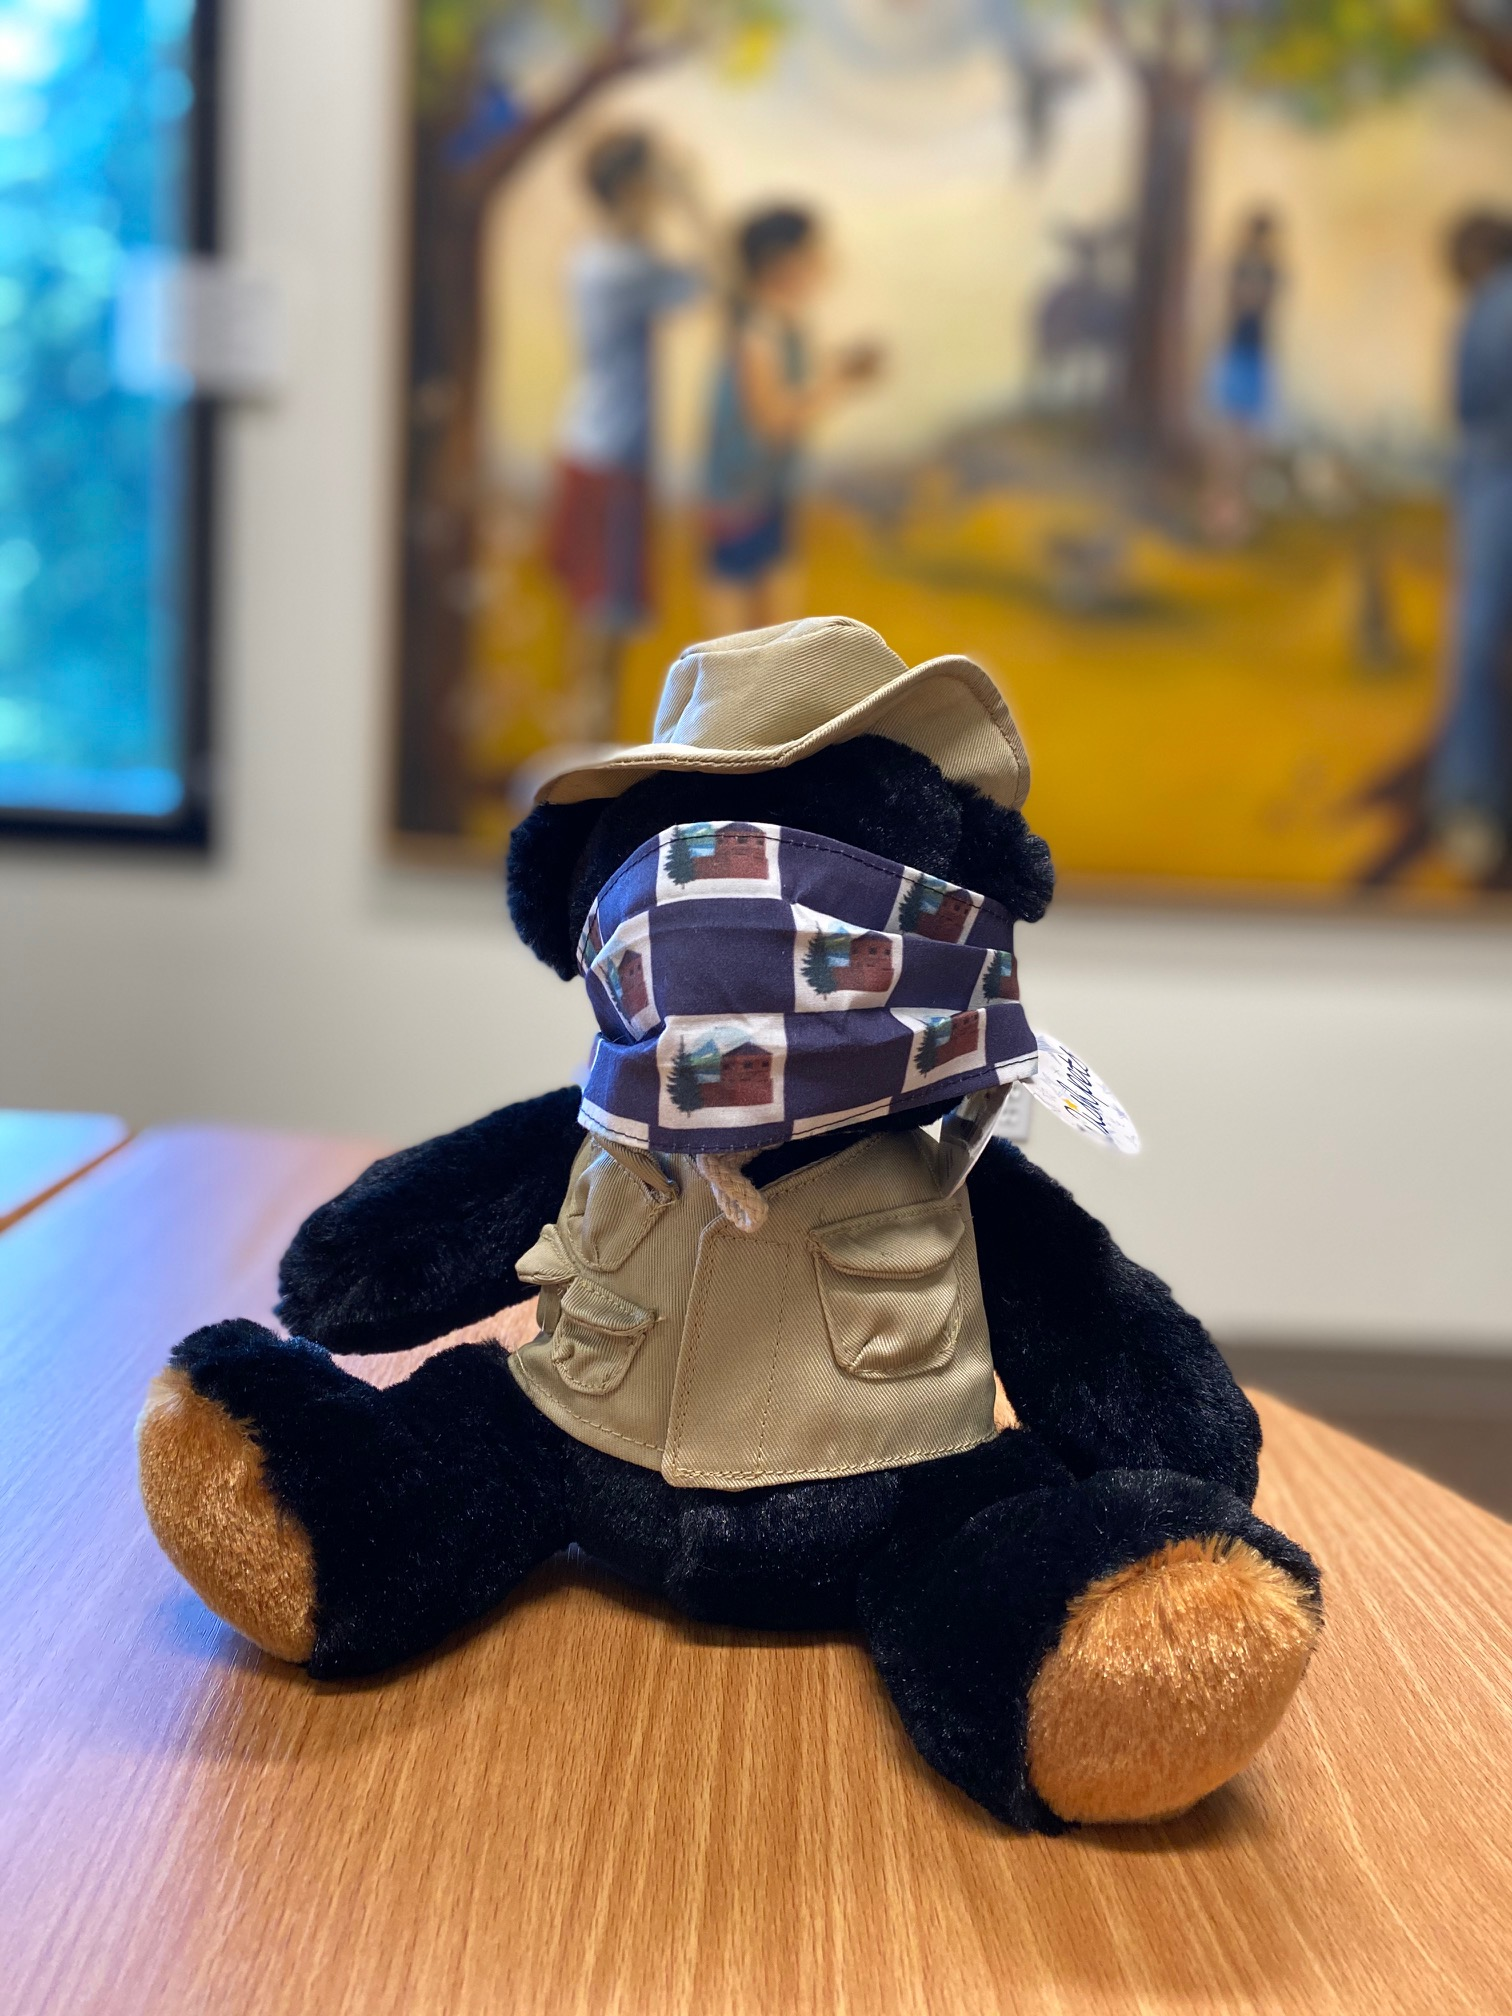 Ranger bear with mask covering mouth